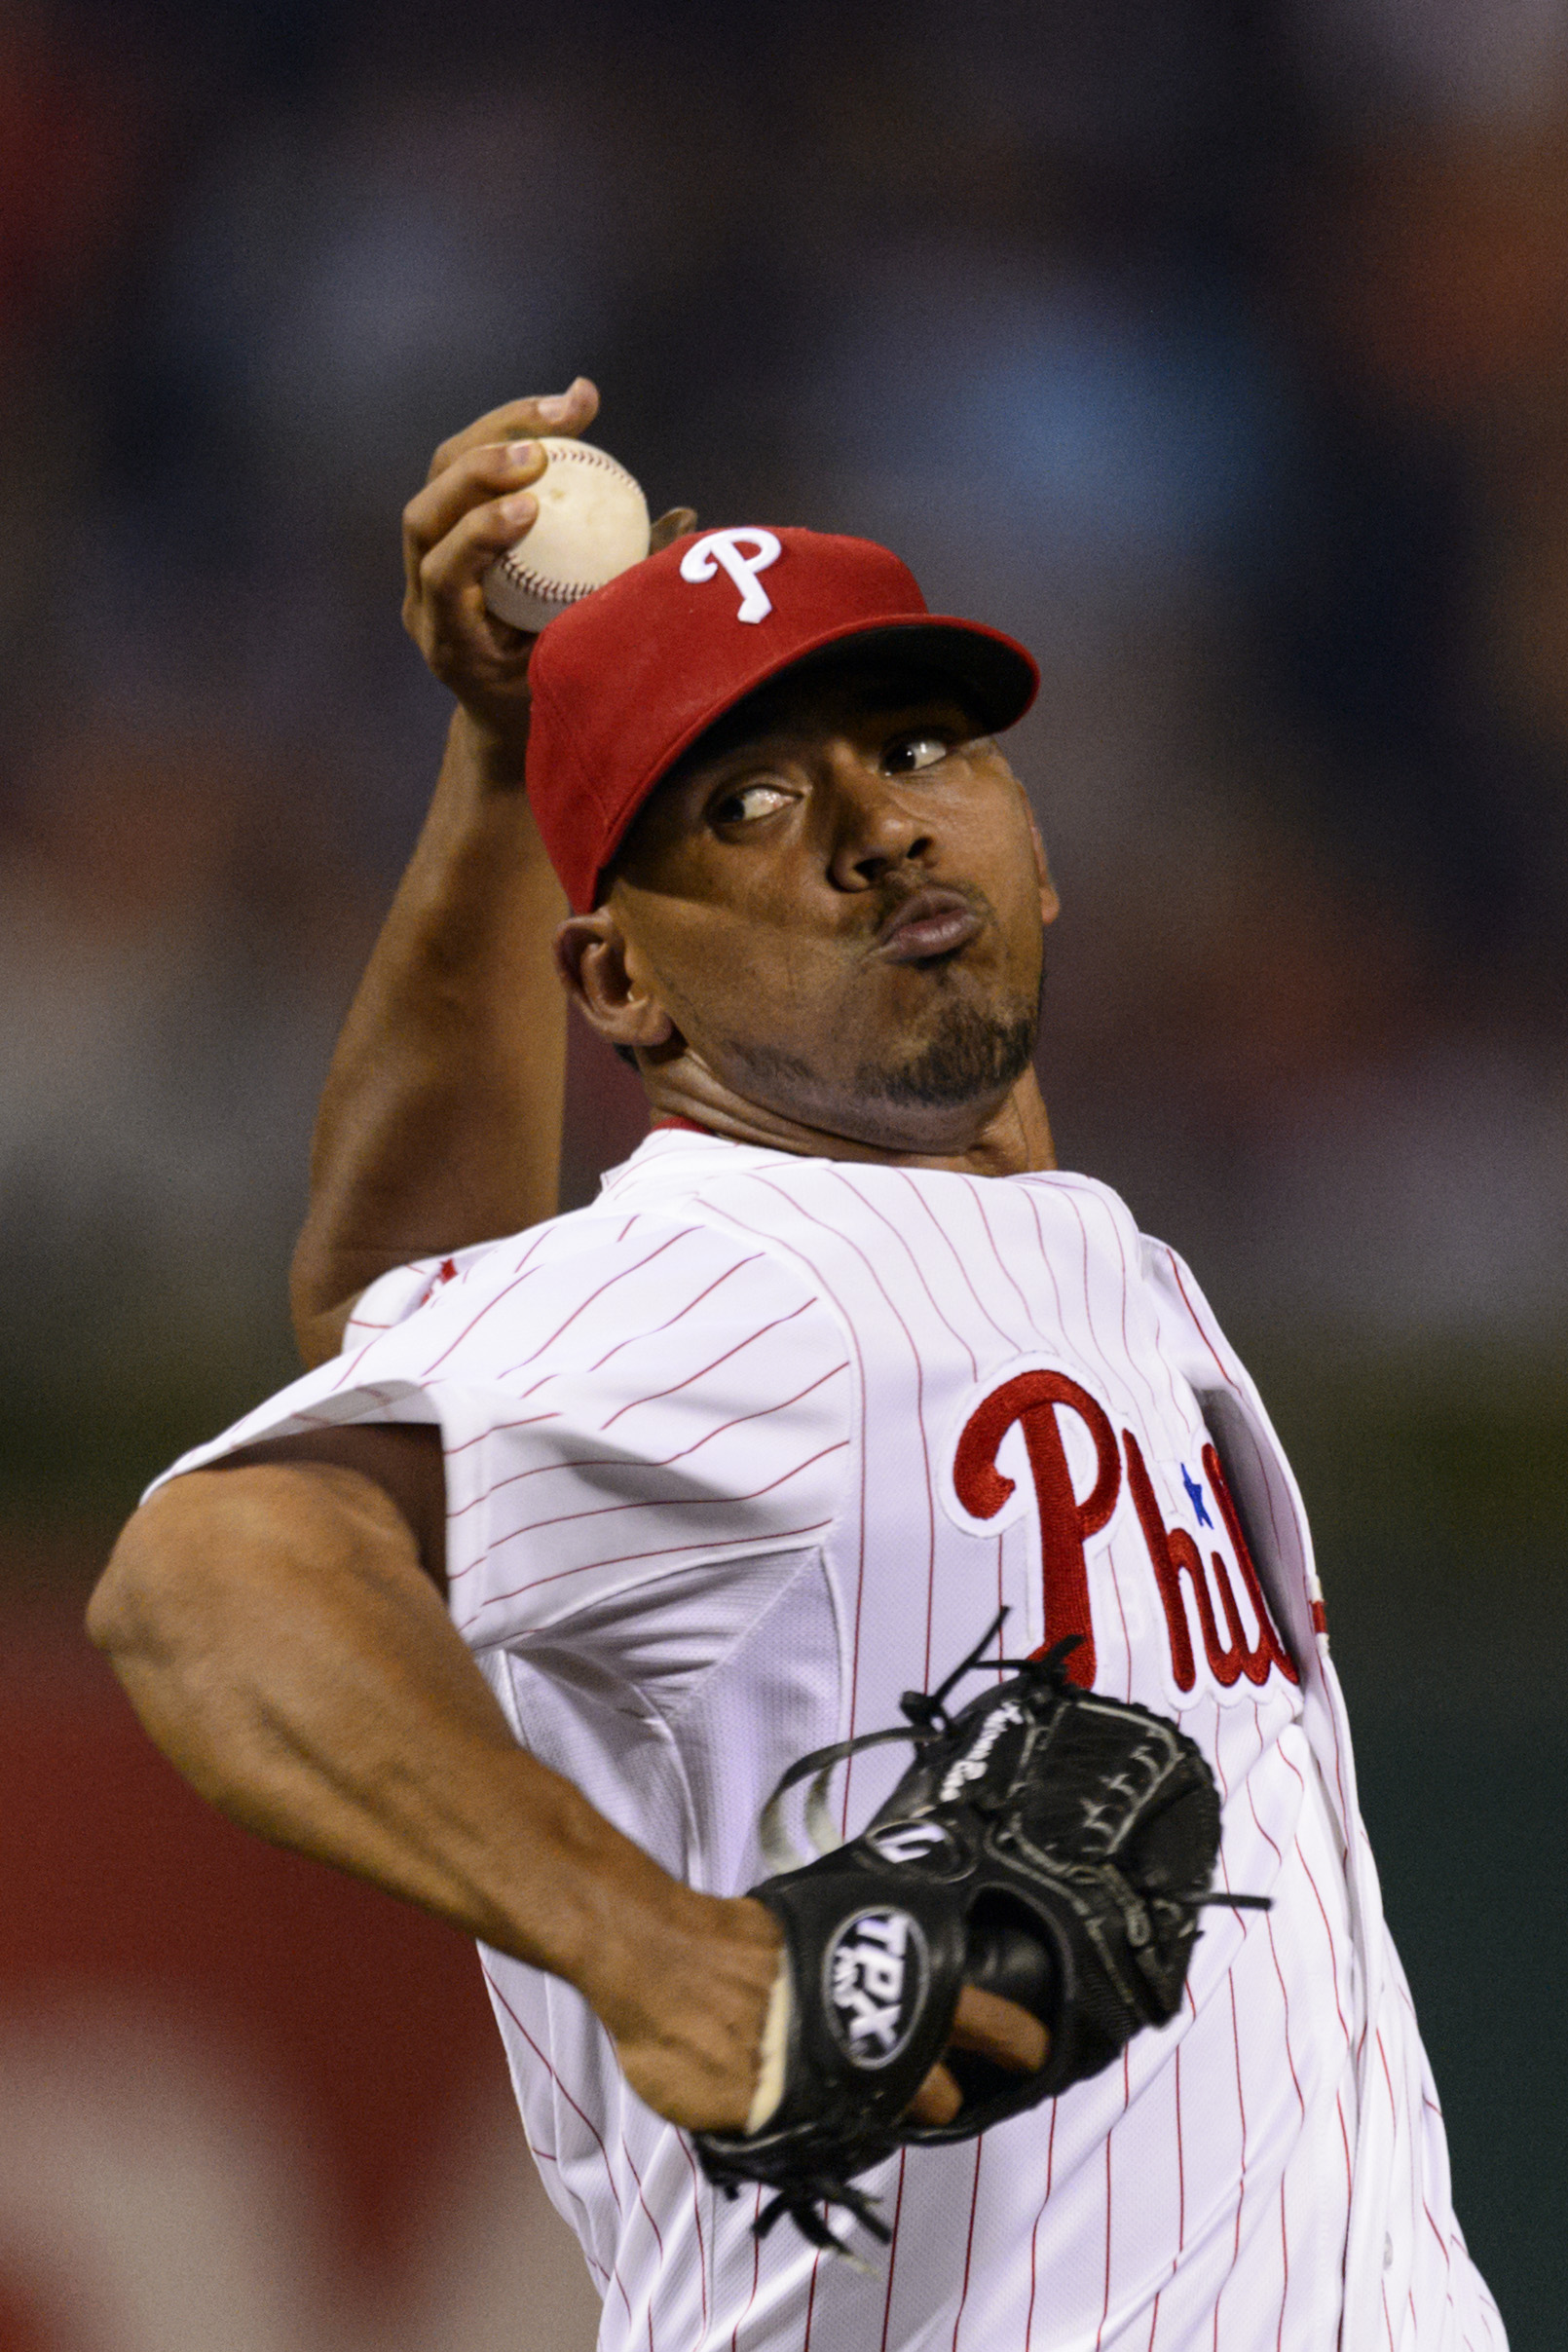 Phillies pitcher Antonio Bastardo will be suspended as part of the Biogenesis probe. (USA Today Sports)